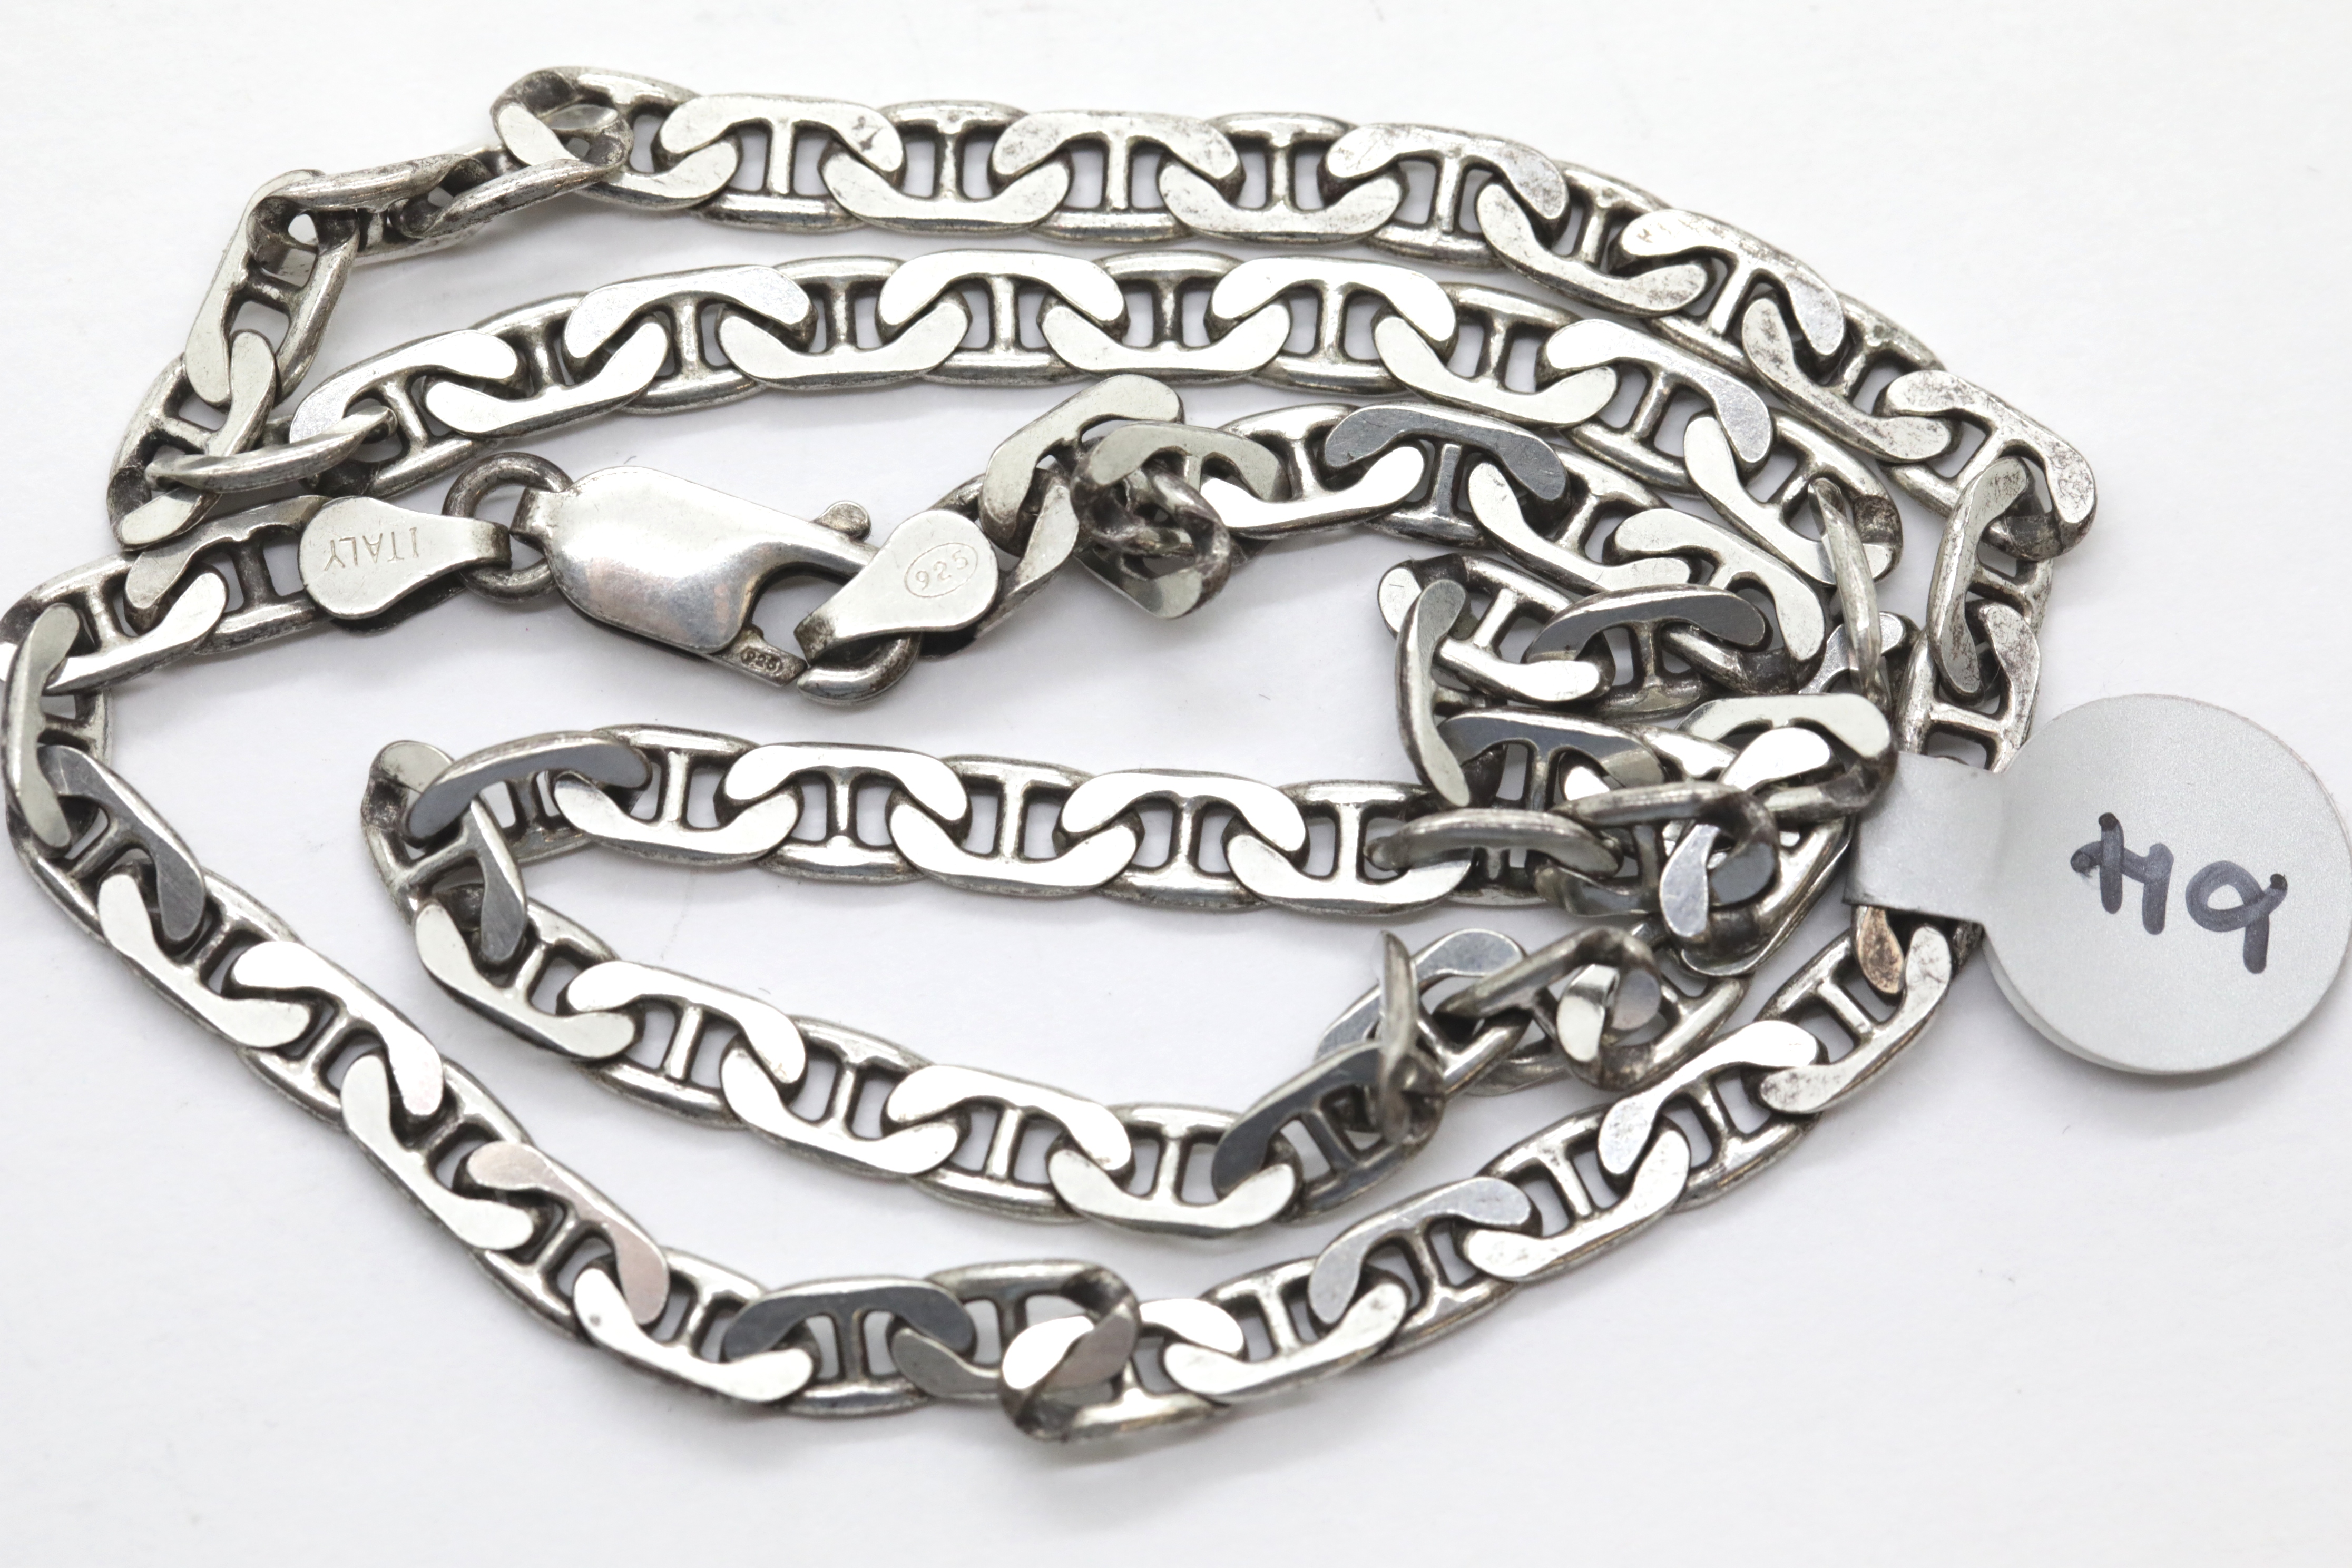 """Lot 1024 - Silver 18"""" solid link flat anchor chain. P&P Group 1 (£14+VAT for the first lot and £1+VAT for"""